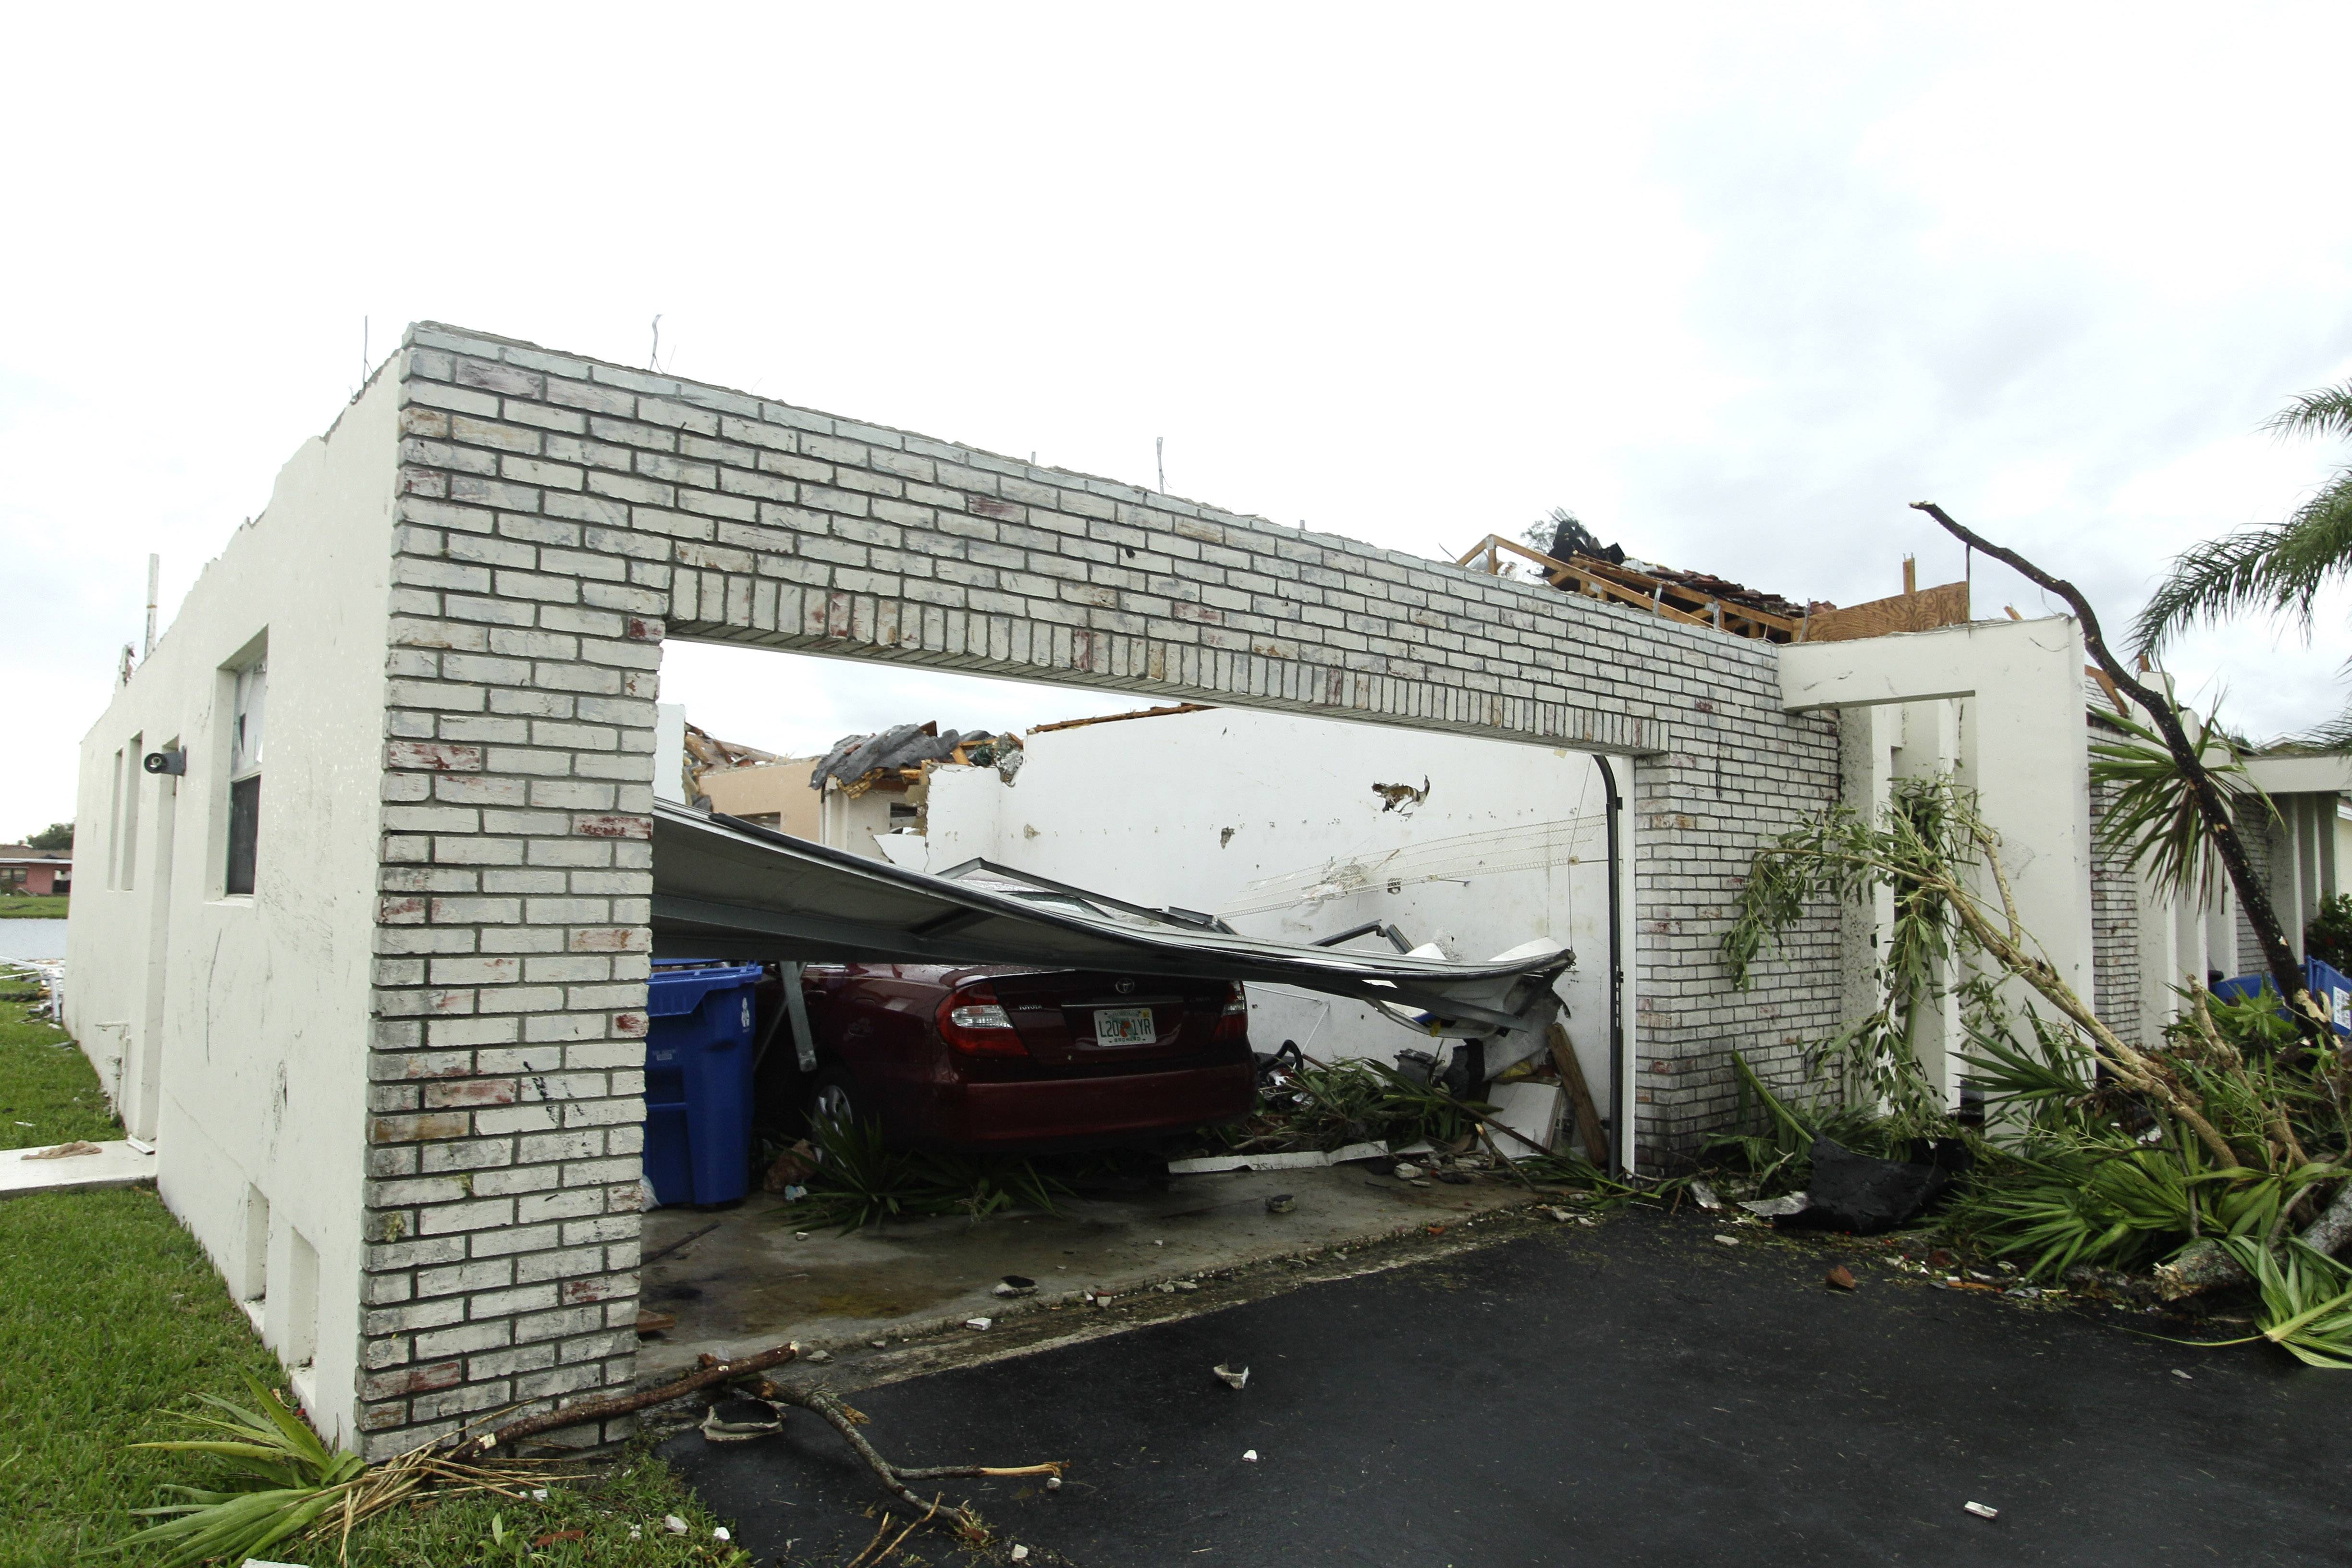 A damaged house in Sunrise, Fla. after a tornado damaged more than two dozen houses in the area. Oklahoma and Kansas may have the reputation as tornado hotspots, but Florida and the rest of the Southeast are far more vulnerable to killer twisters.